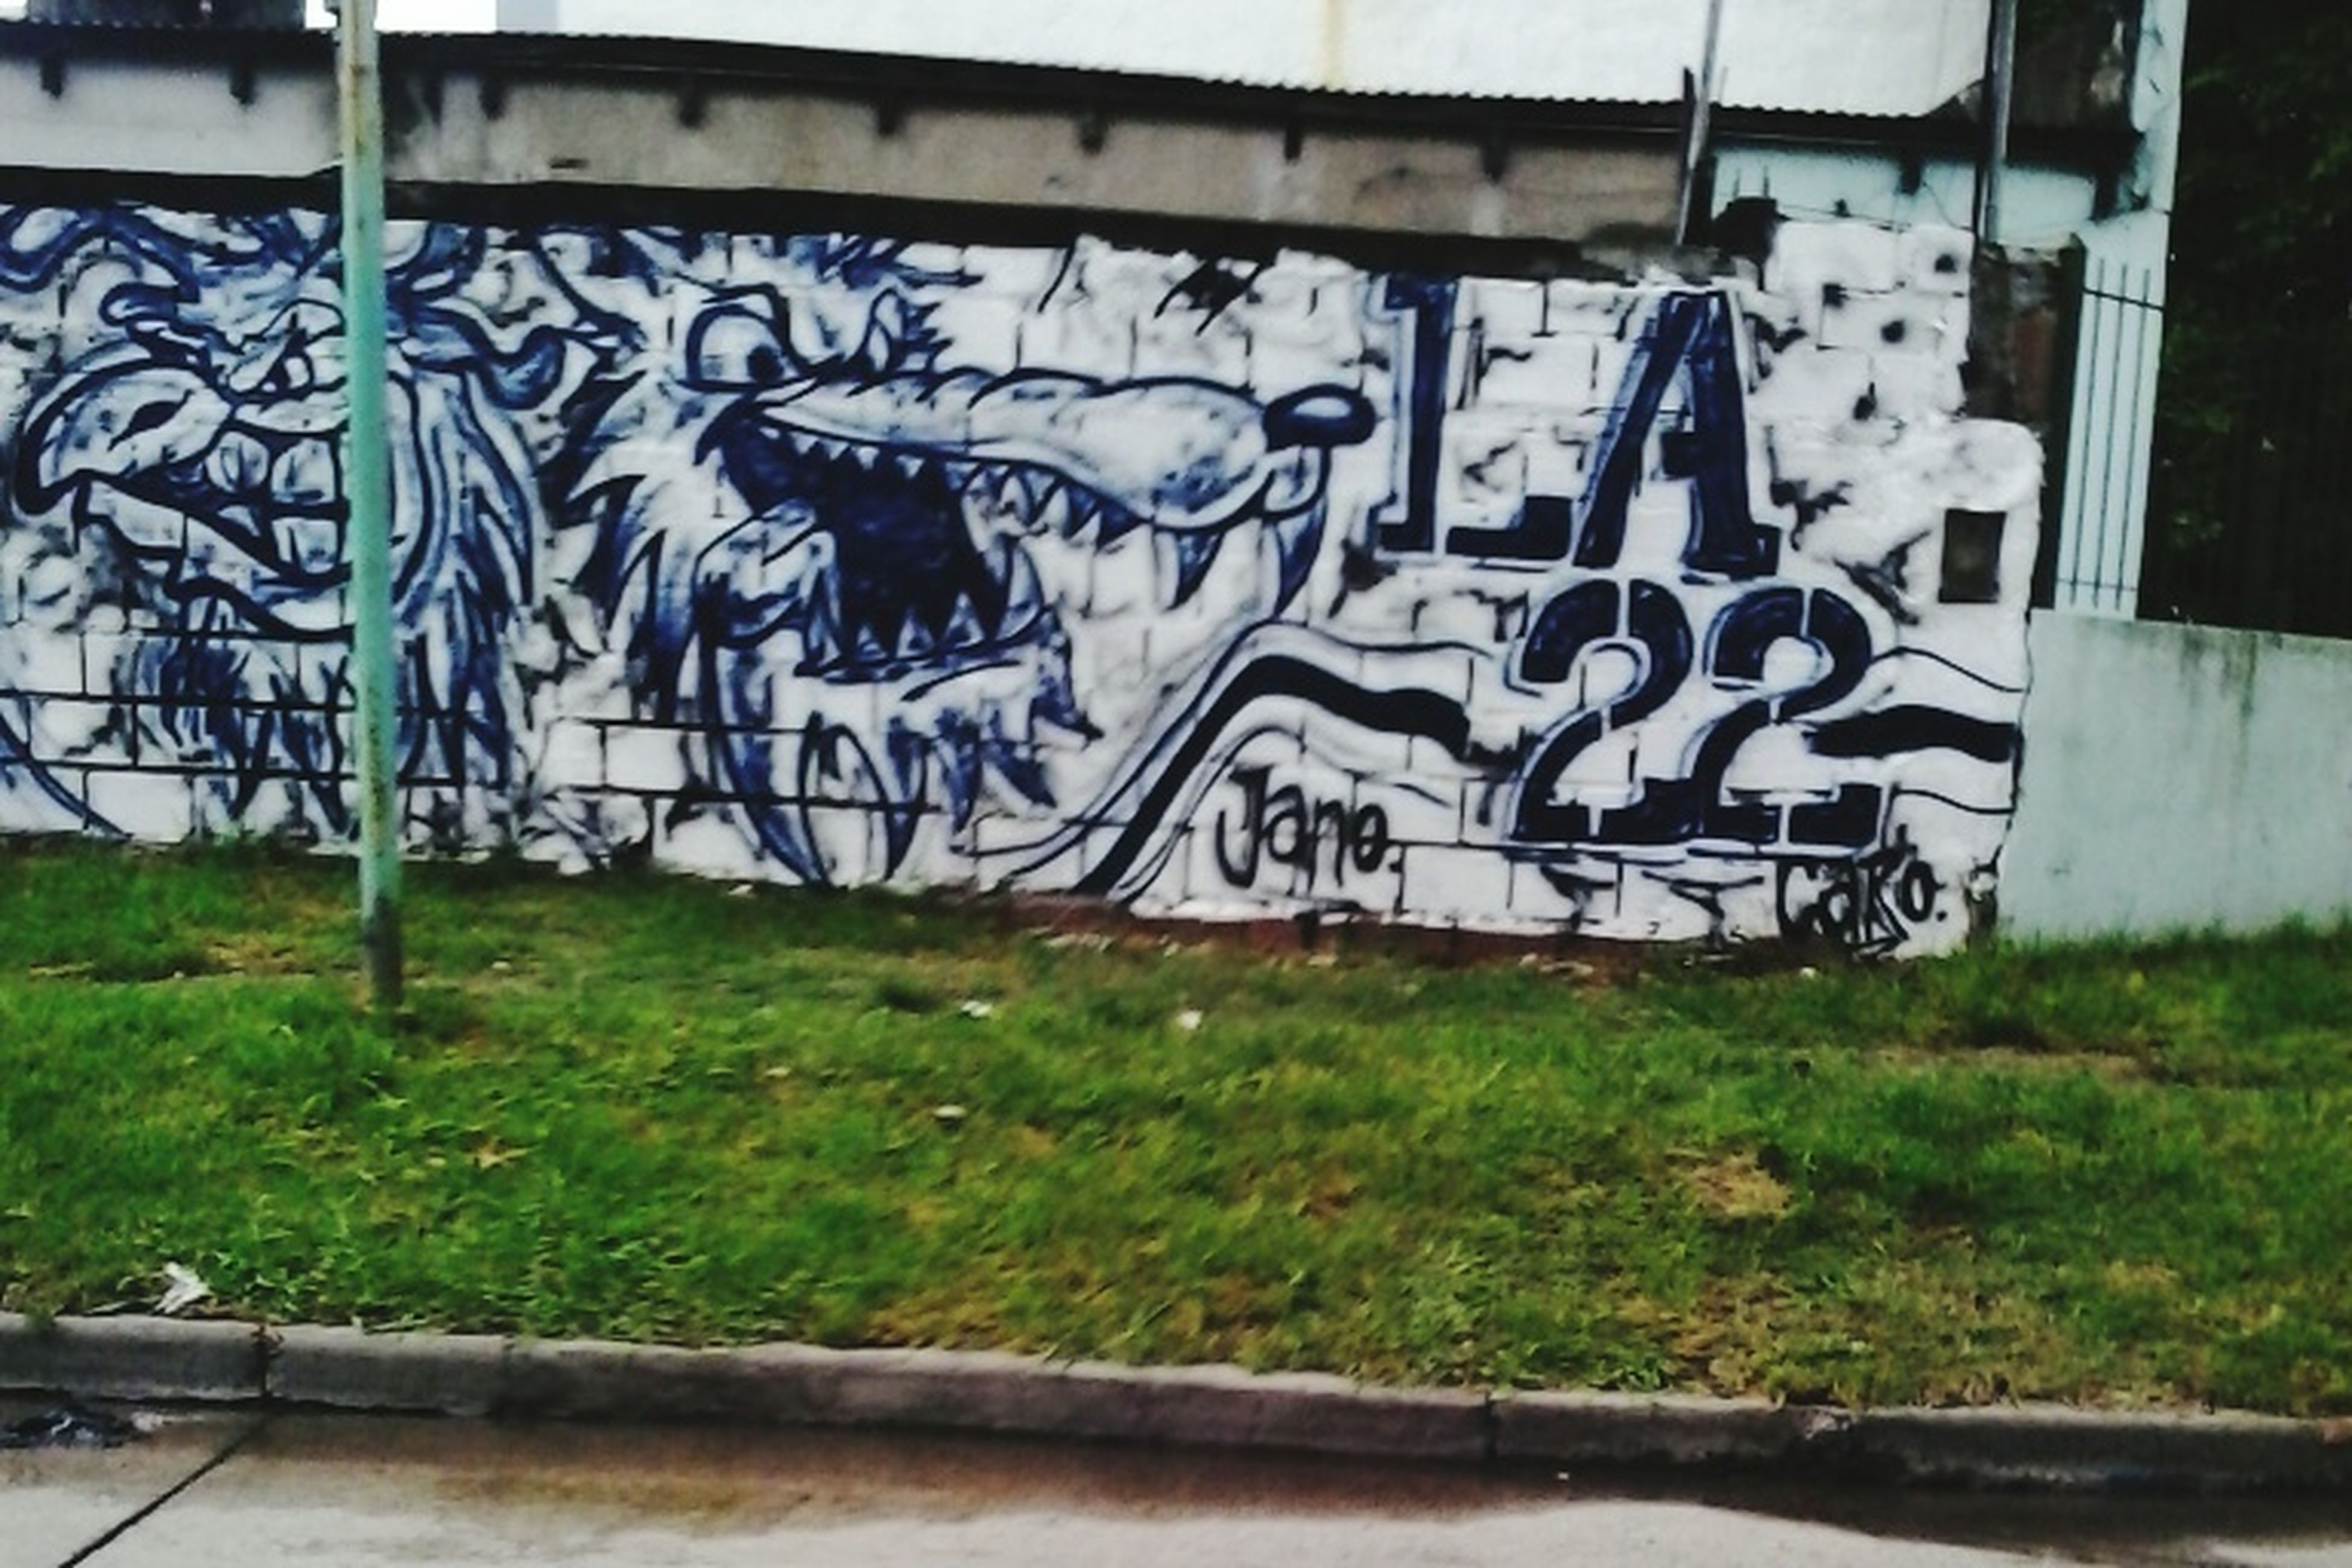 graffiti, art, creativity, art and craft, built structure, wall - building feature, architecture, building exterior, day, street art, outdoors, no people, grass, human representation, wall, plant, fence, metal, sunlight, animal representation